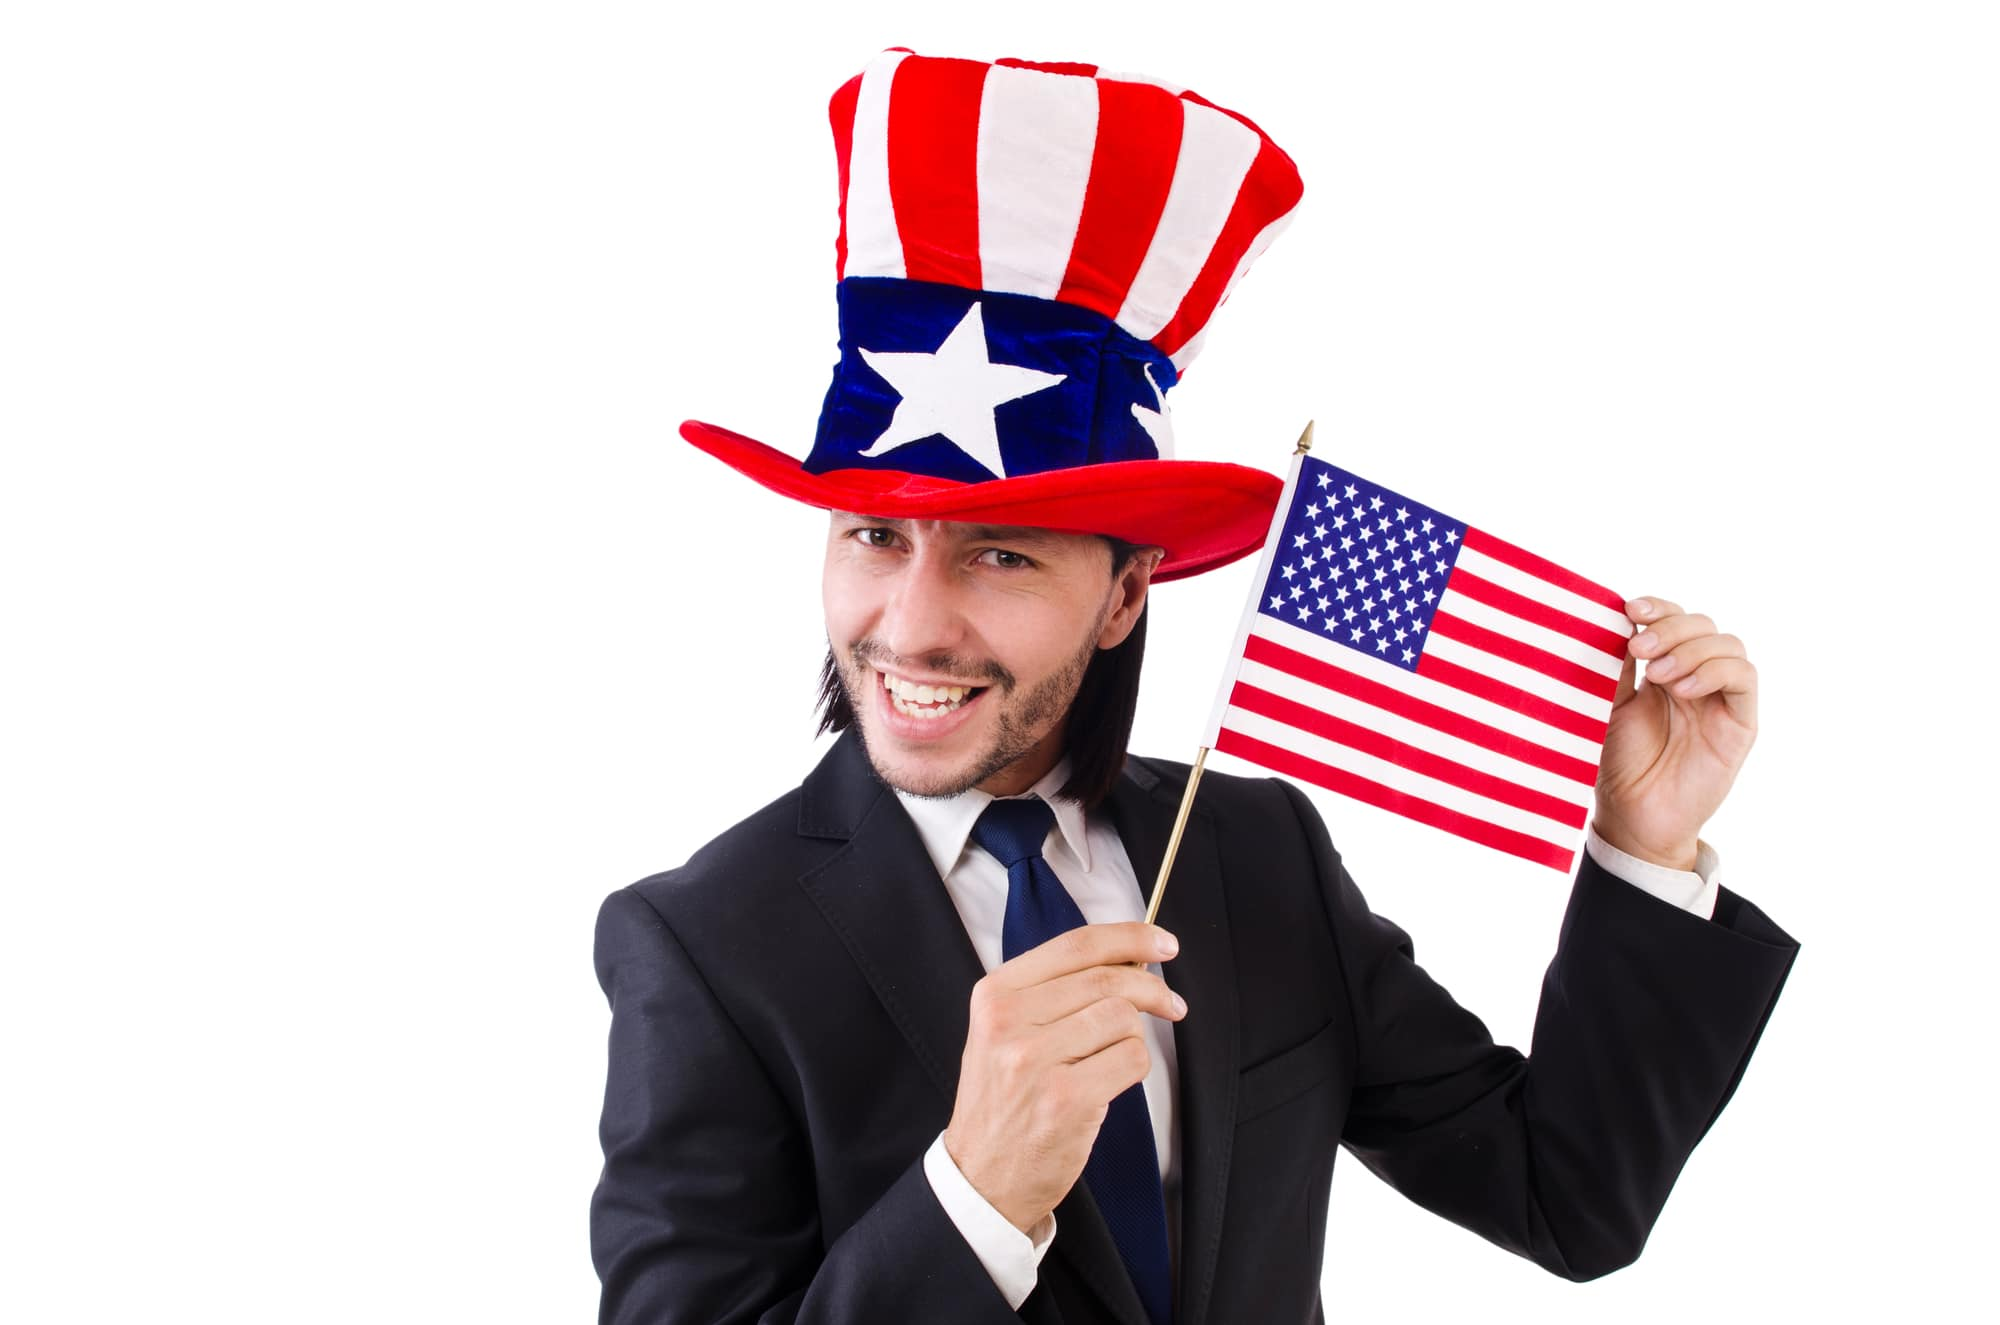 LIVE YOUR AMERICAN DREAM WITH E2 VISA